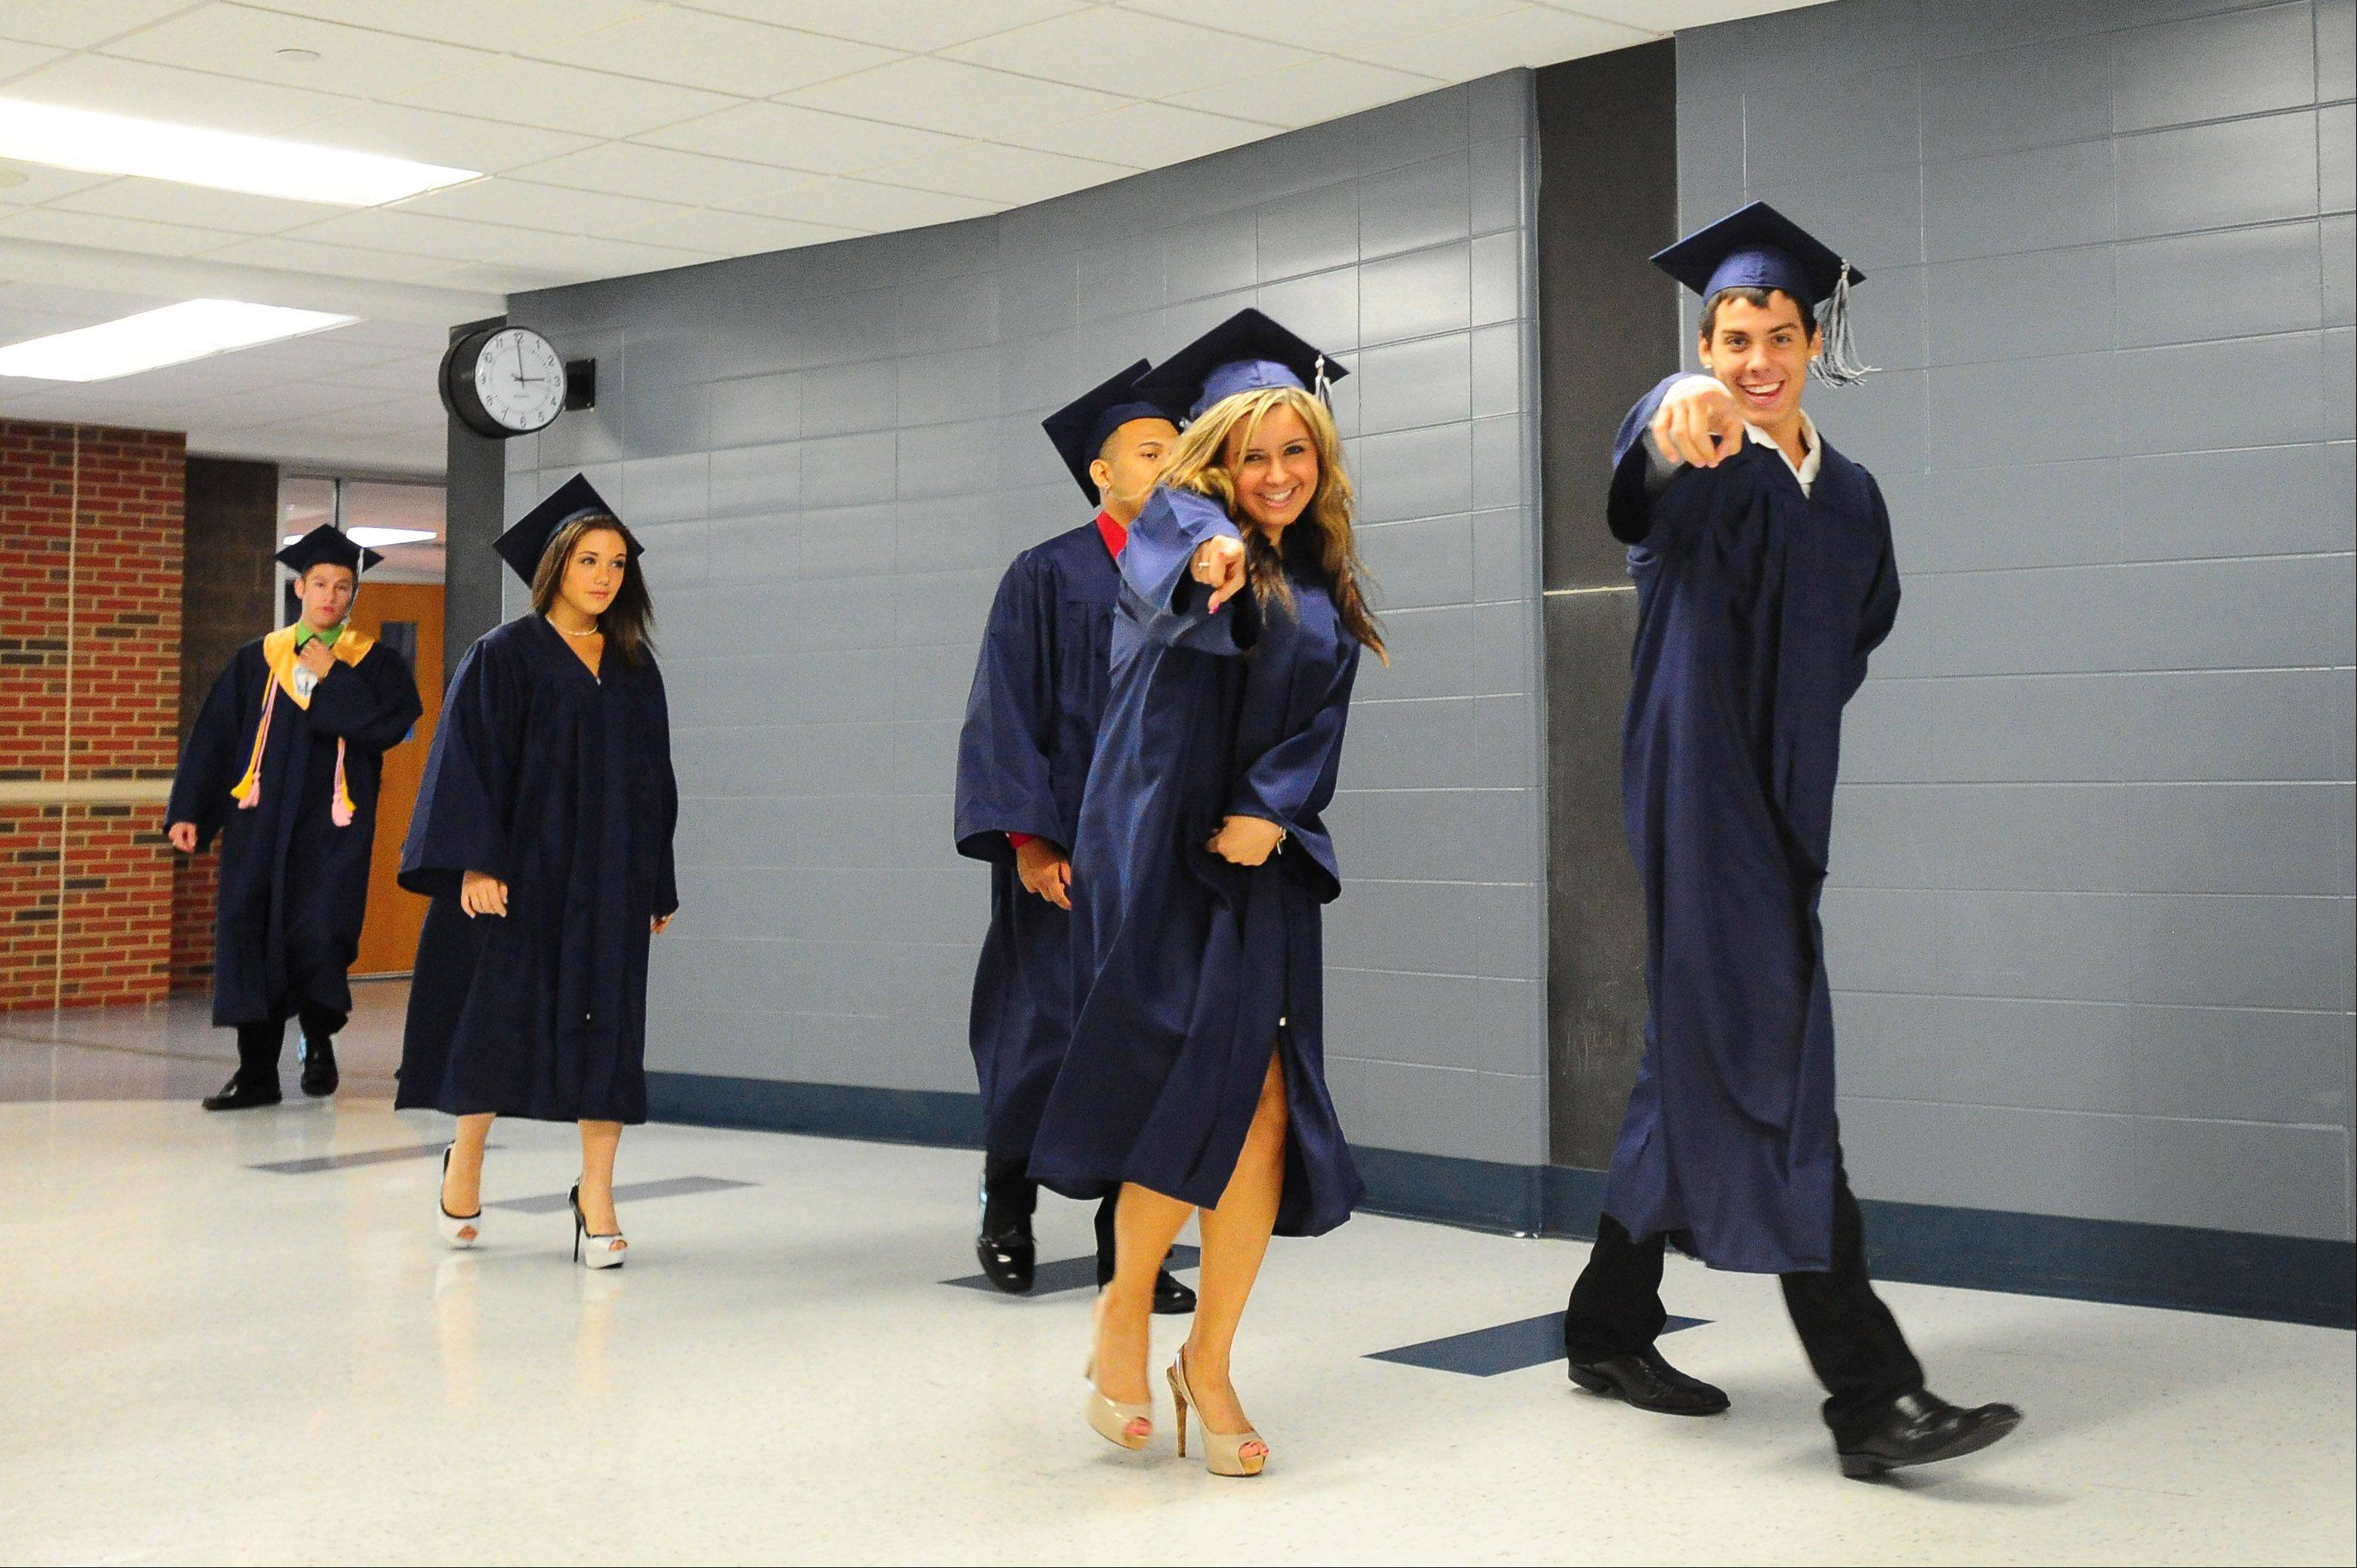 Rachael Capizzano and Thomas Caputo walk through the halls before entering the Addison Trail High School Class of 2012 Commencement on Sunday